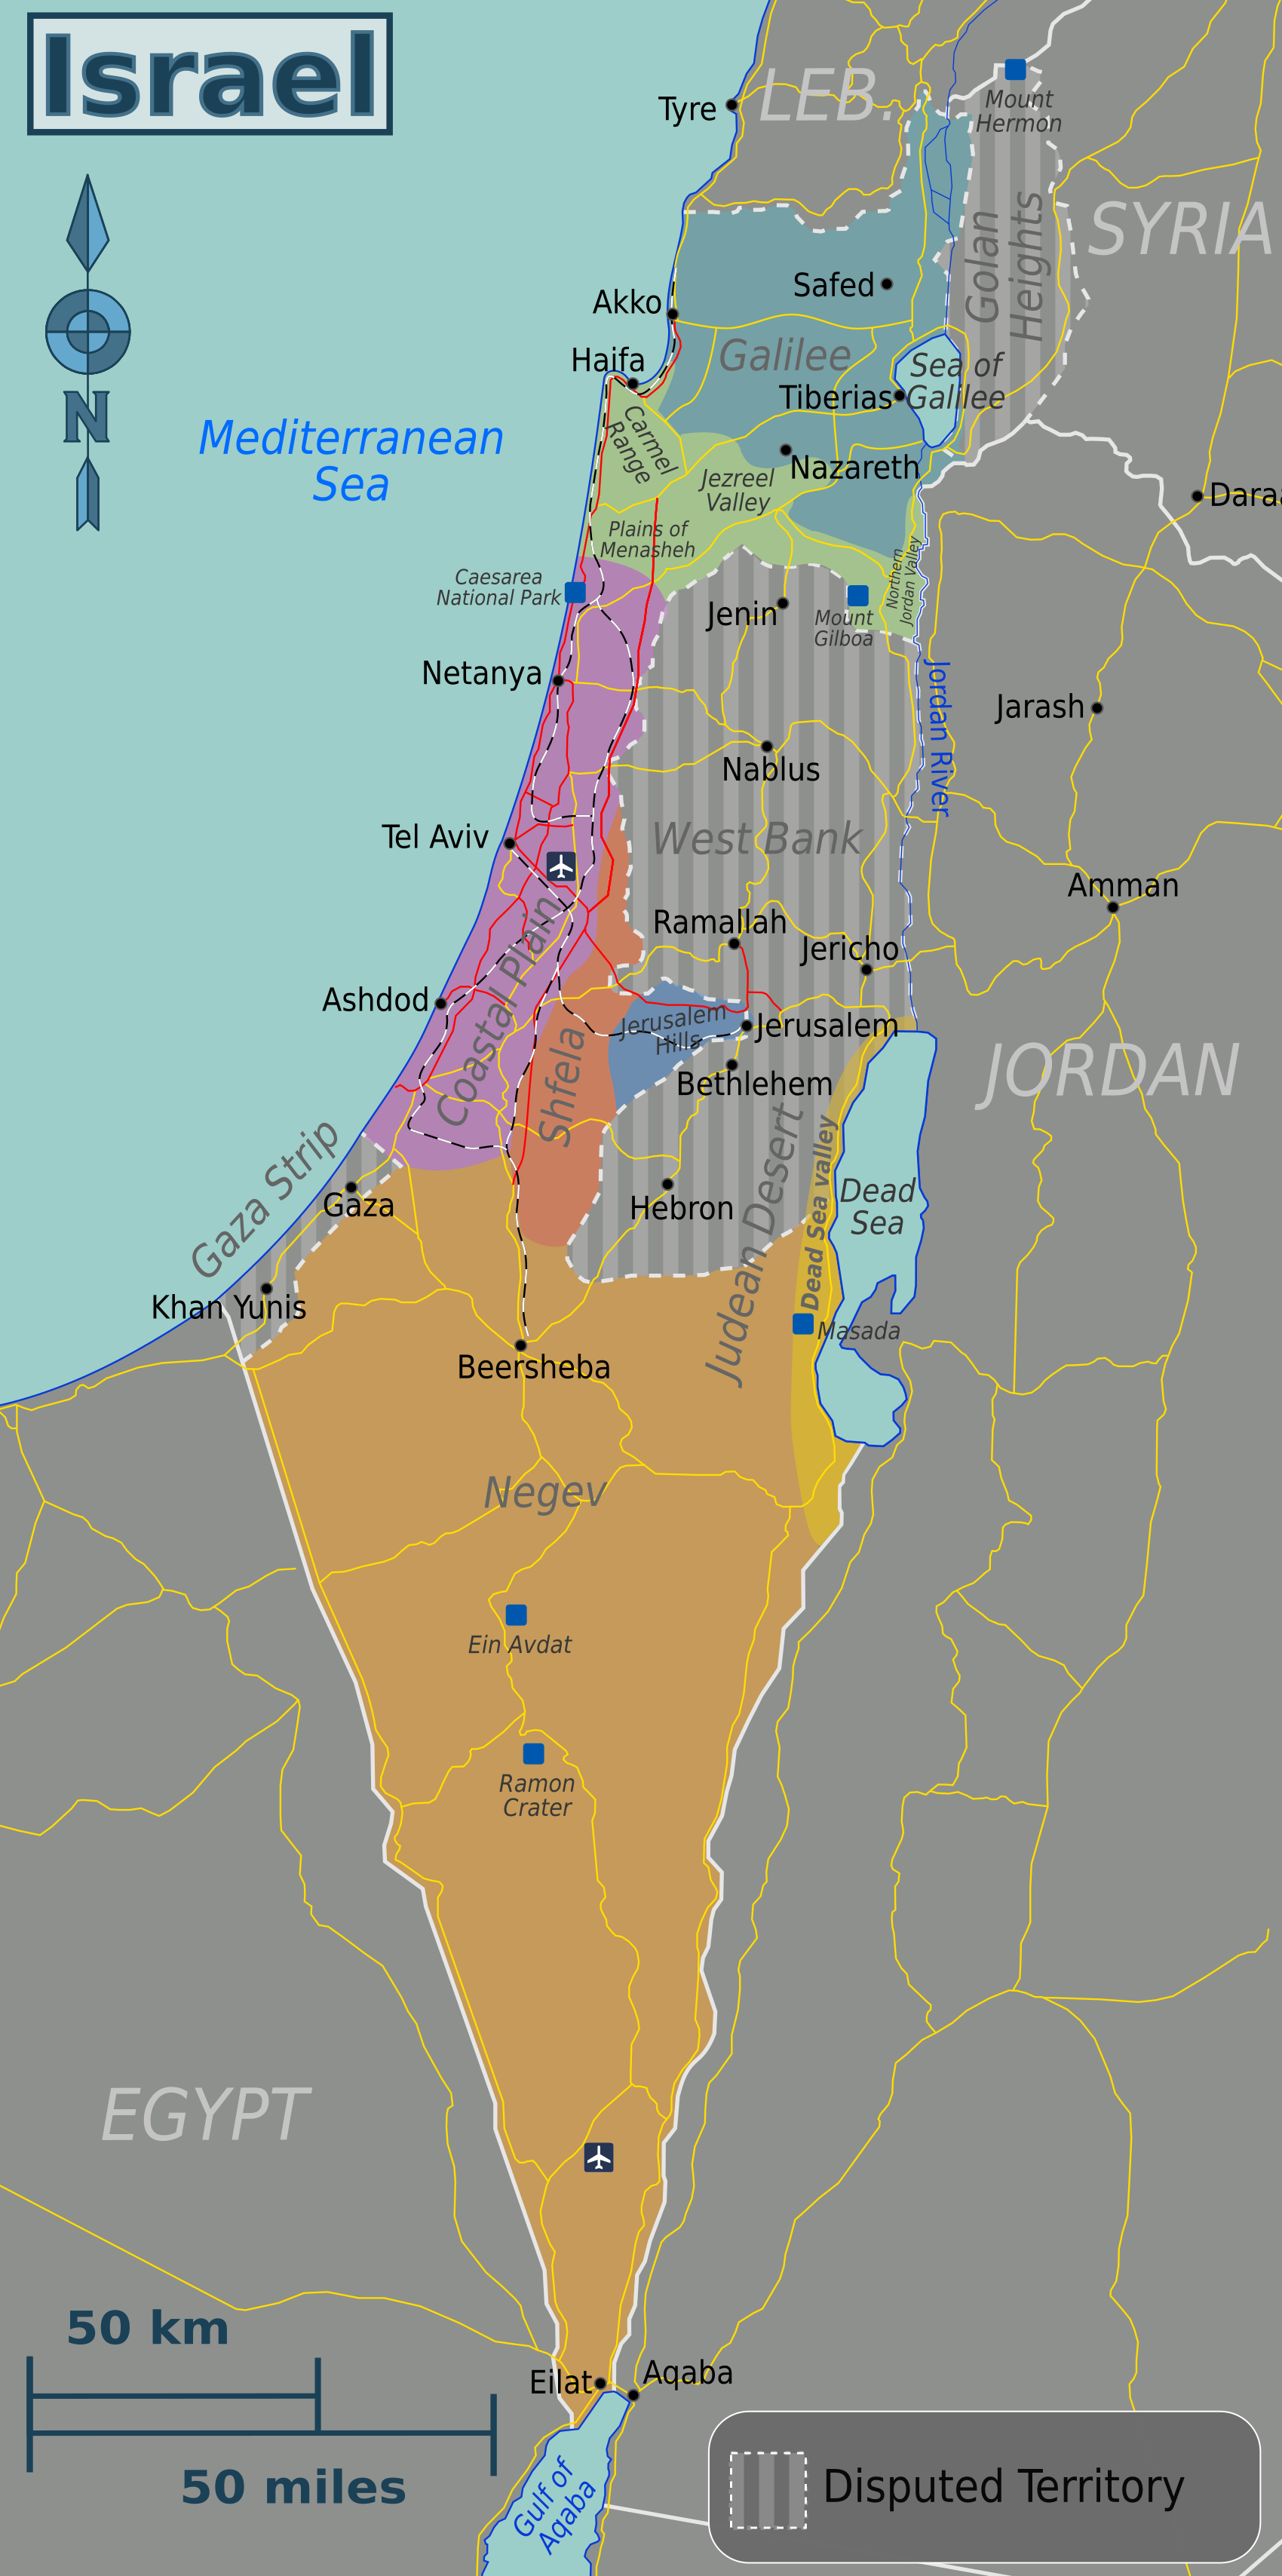 FileIsrael Map Hebrew WV Englishpng Wikimedia Commons - Isreal map